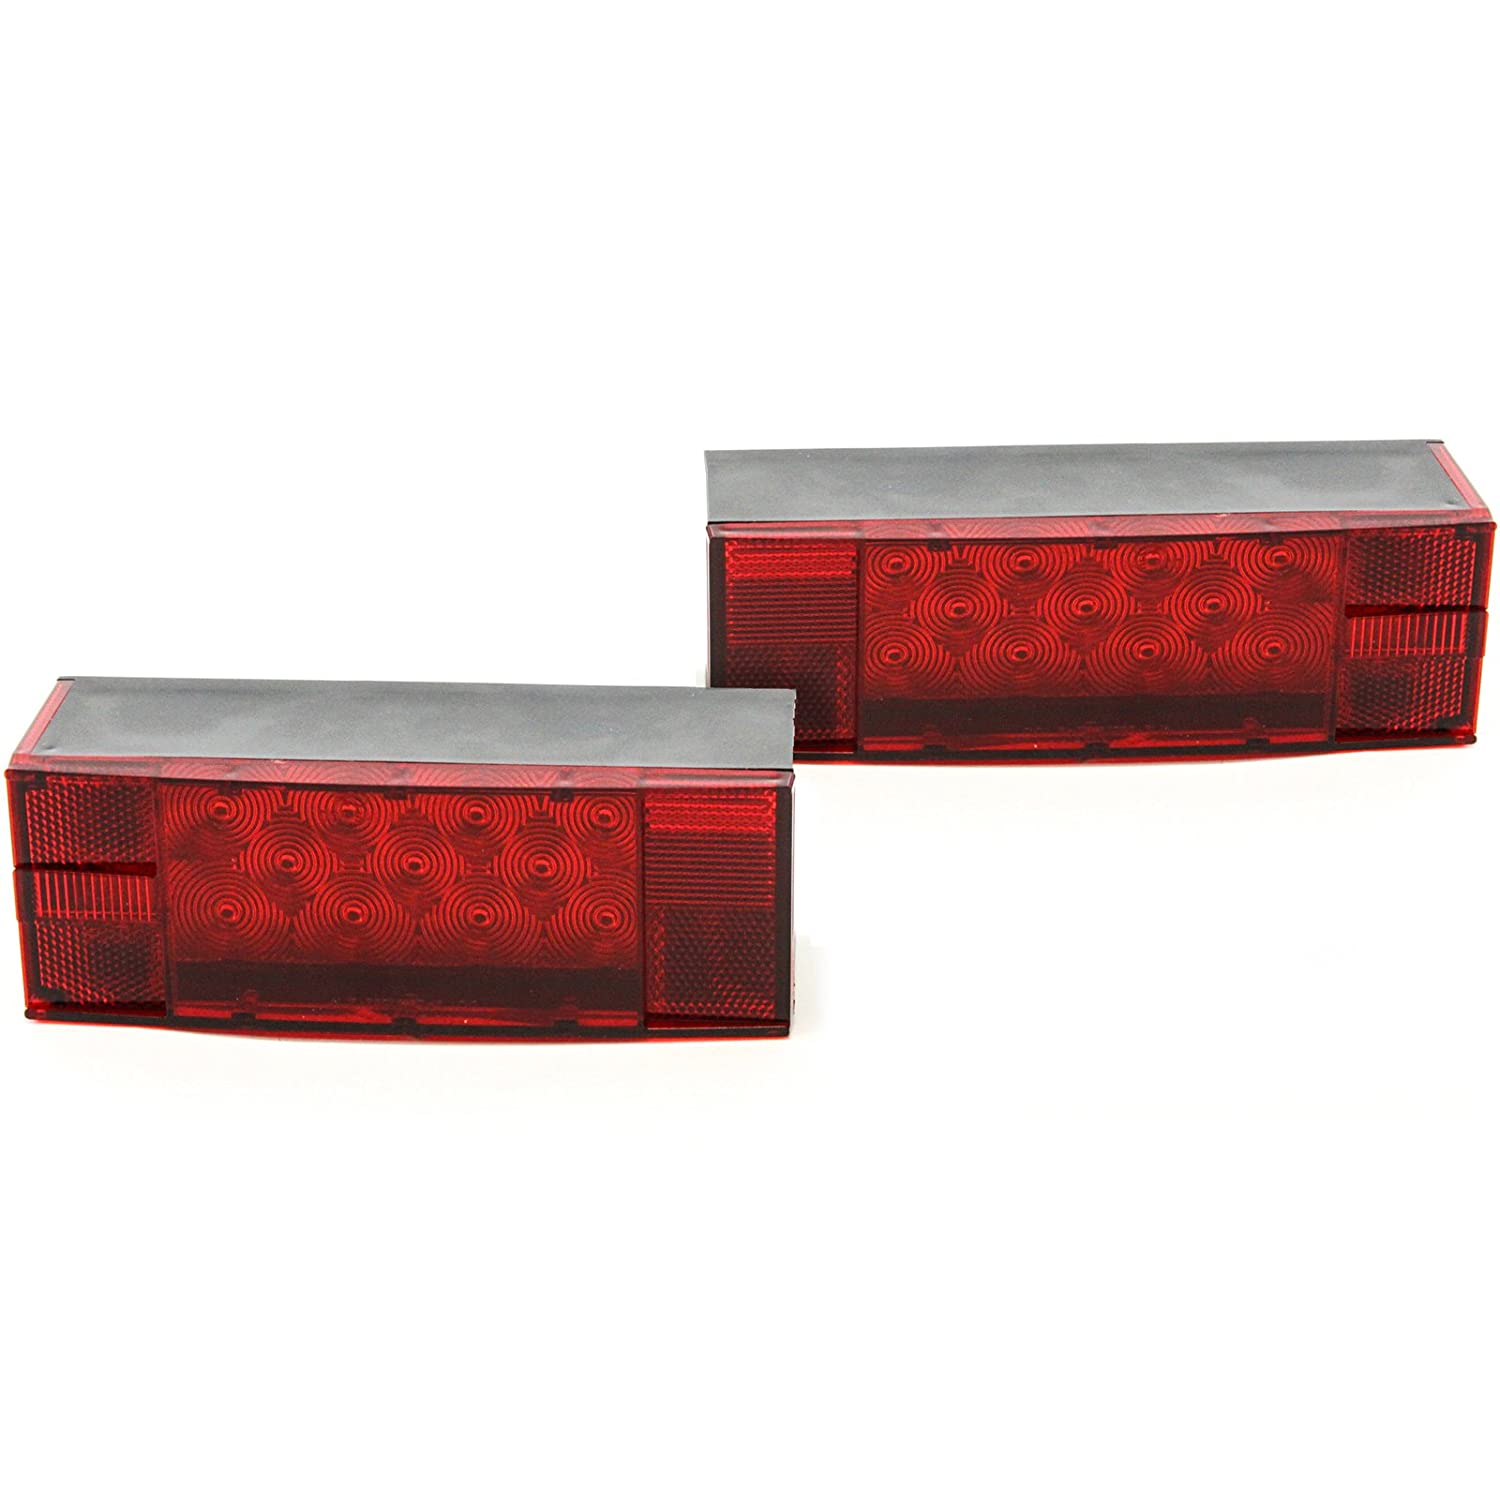 LED Low Profile Red Trailer Turn/Signal/Stop 2 Light L/R Submersible DOT Over 80 Red Hound Auto